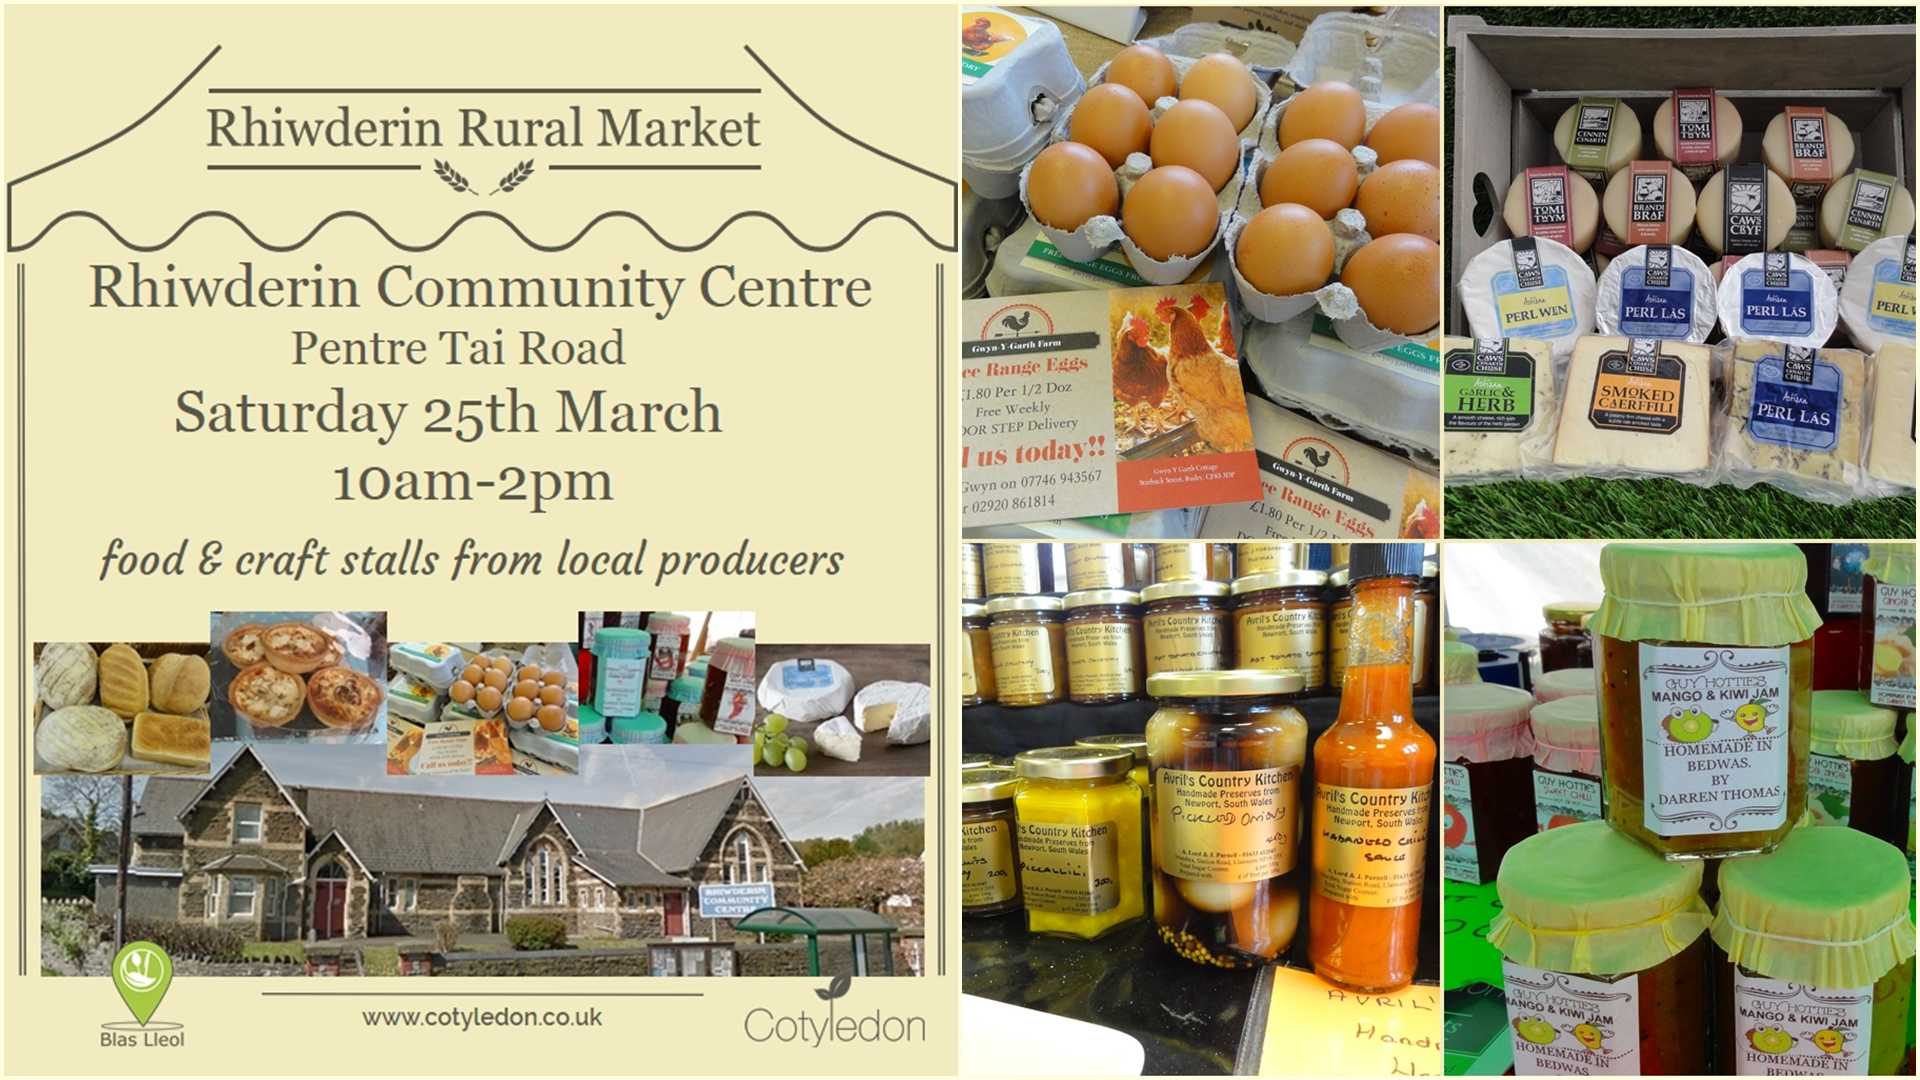 Rhiwderin Rural Market